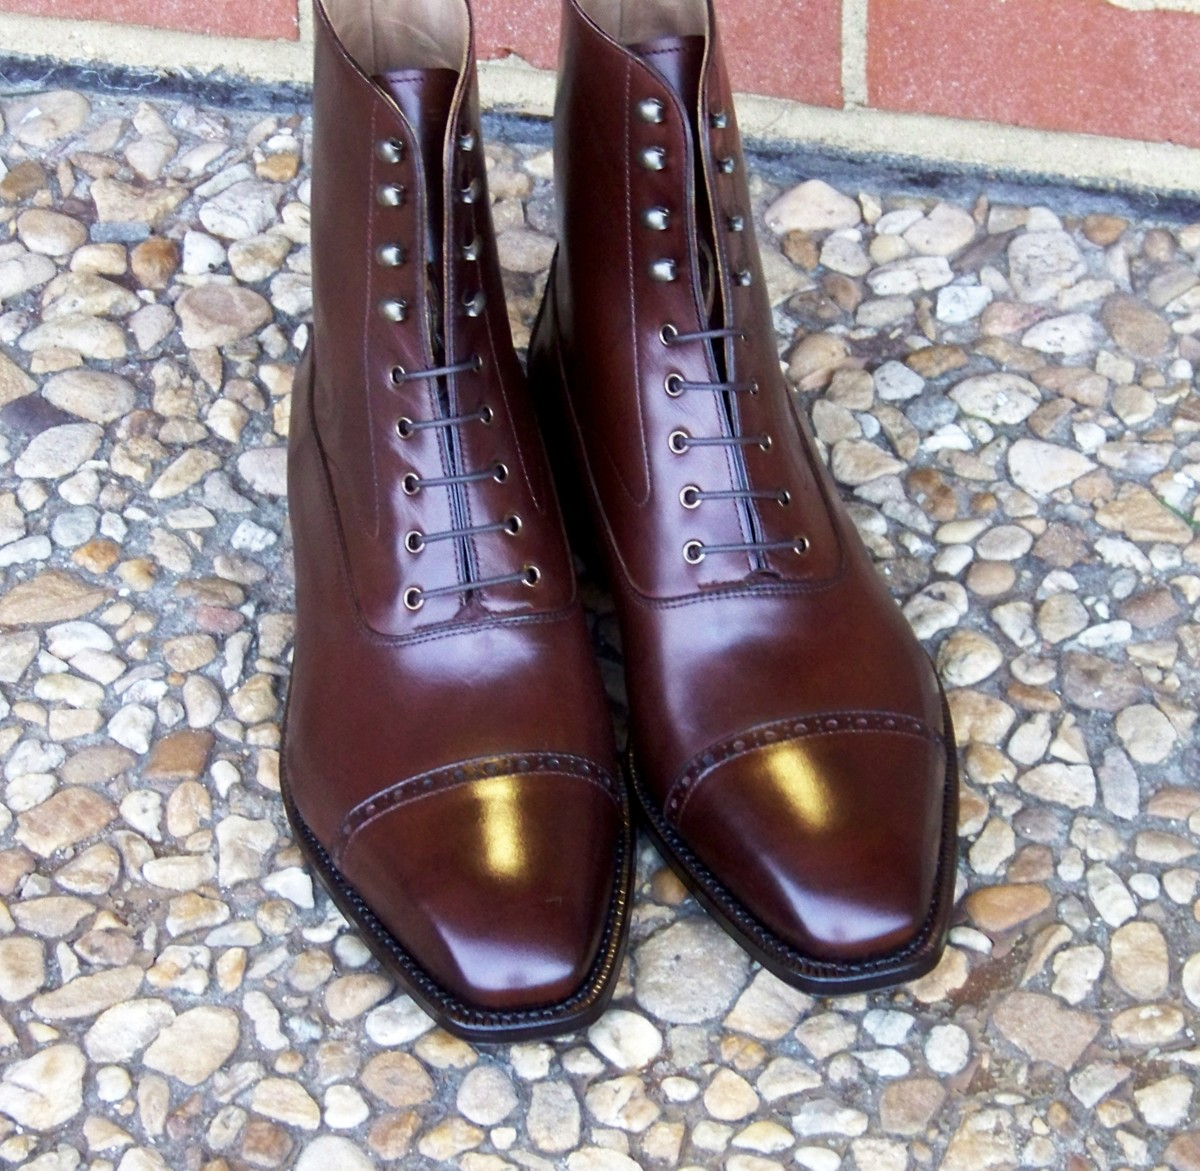 Allen Edmonds Balmoral Boot in the works   Page 5   Ask Andy